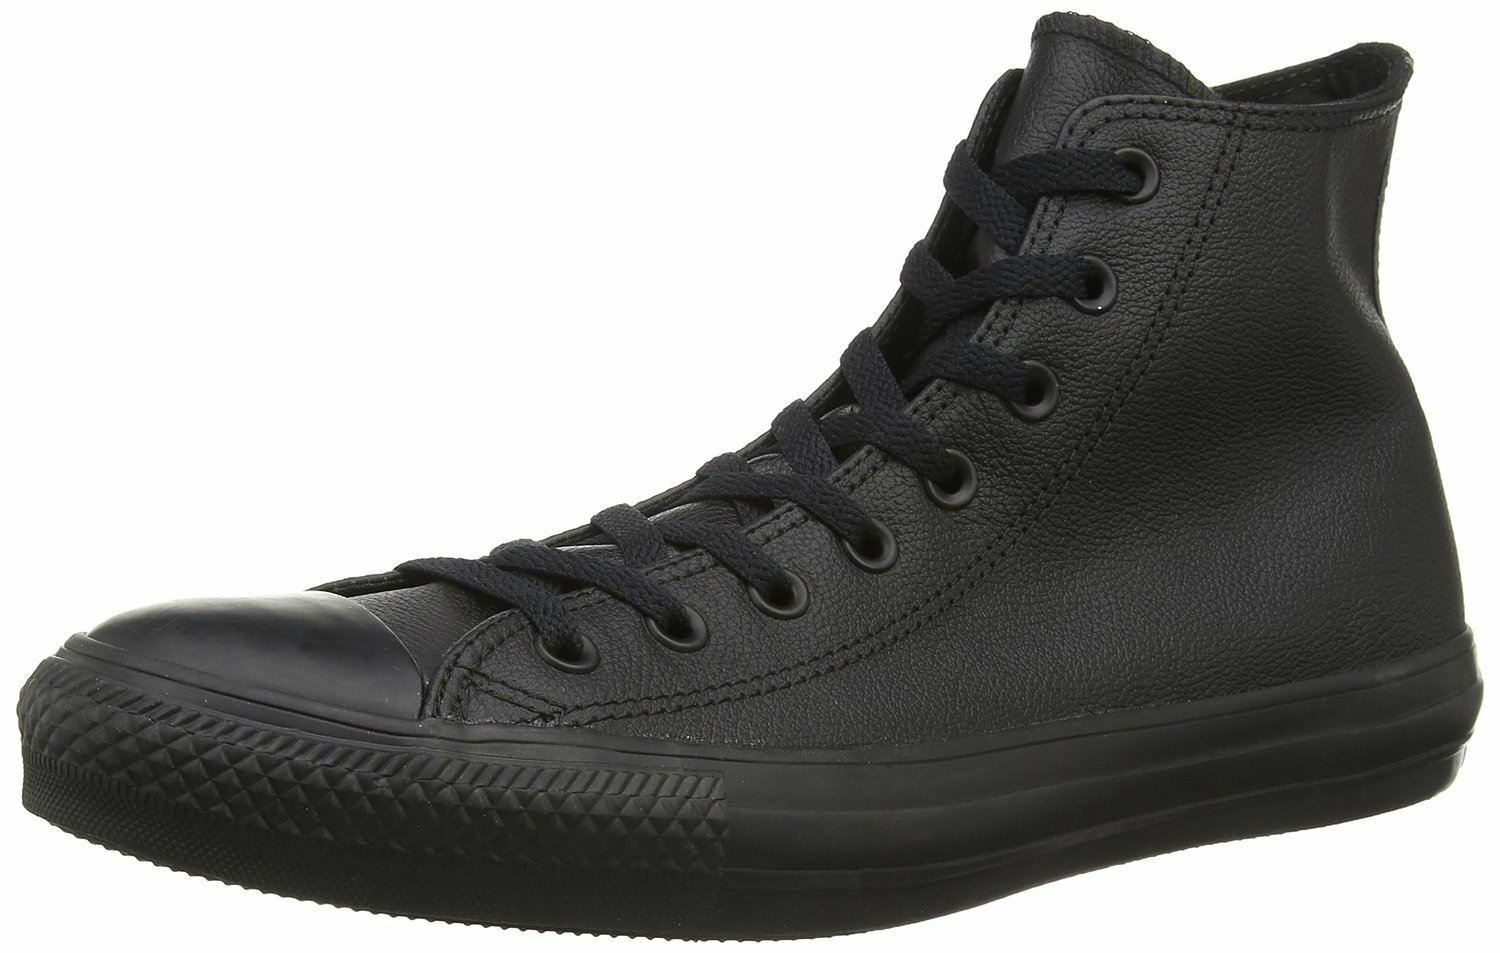 Converse Chuck Taylor All Star Noir Hi Unisex Leather Trainers Bottes